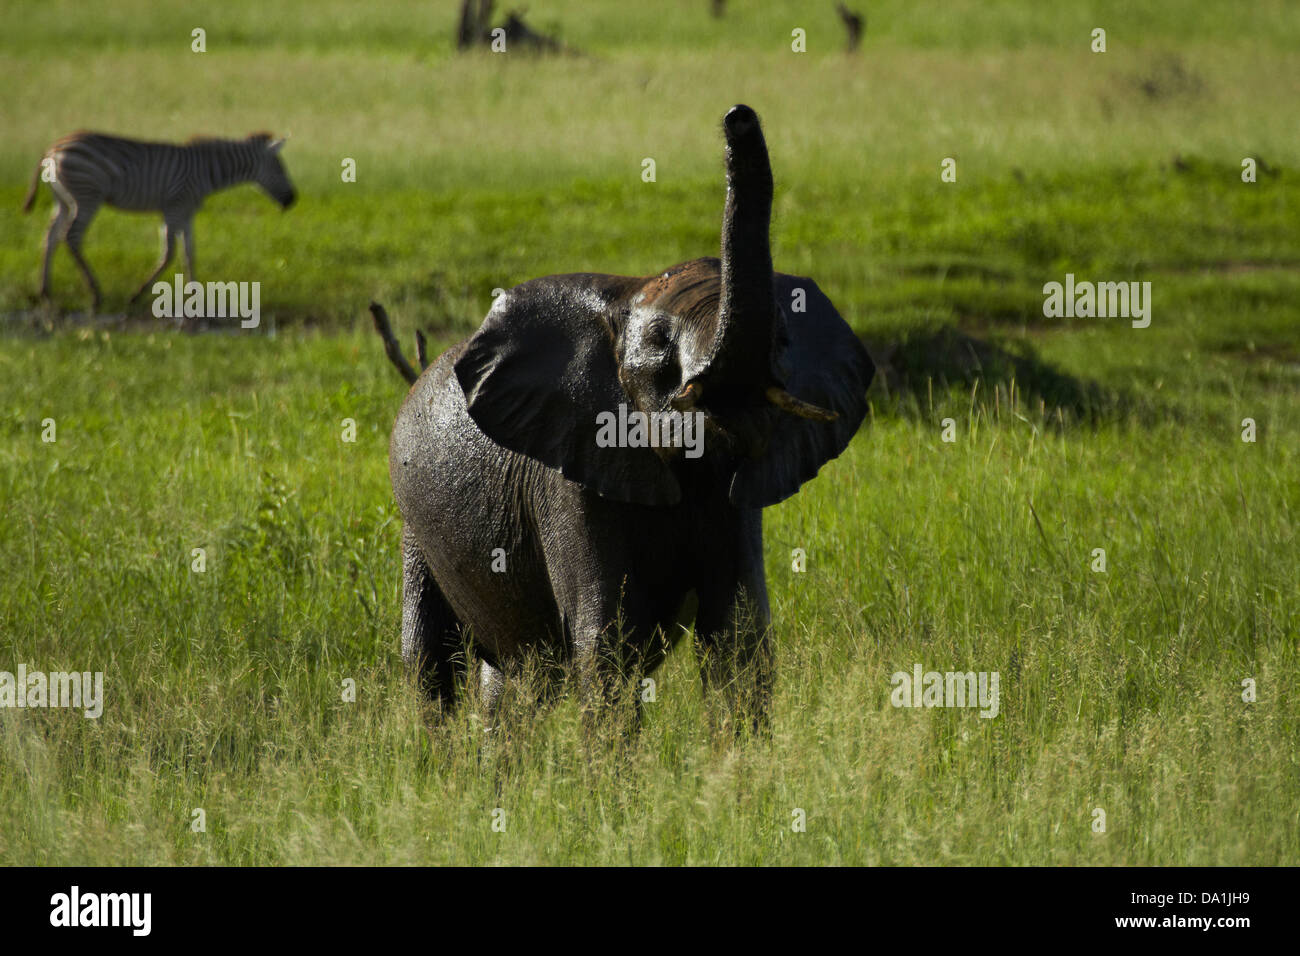 Elephant smelling the air (Loxodonta africana), Hwange National Park, Zimbabwe, Southern Africa Stock Photo